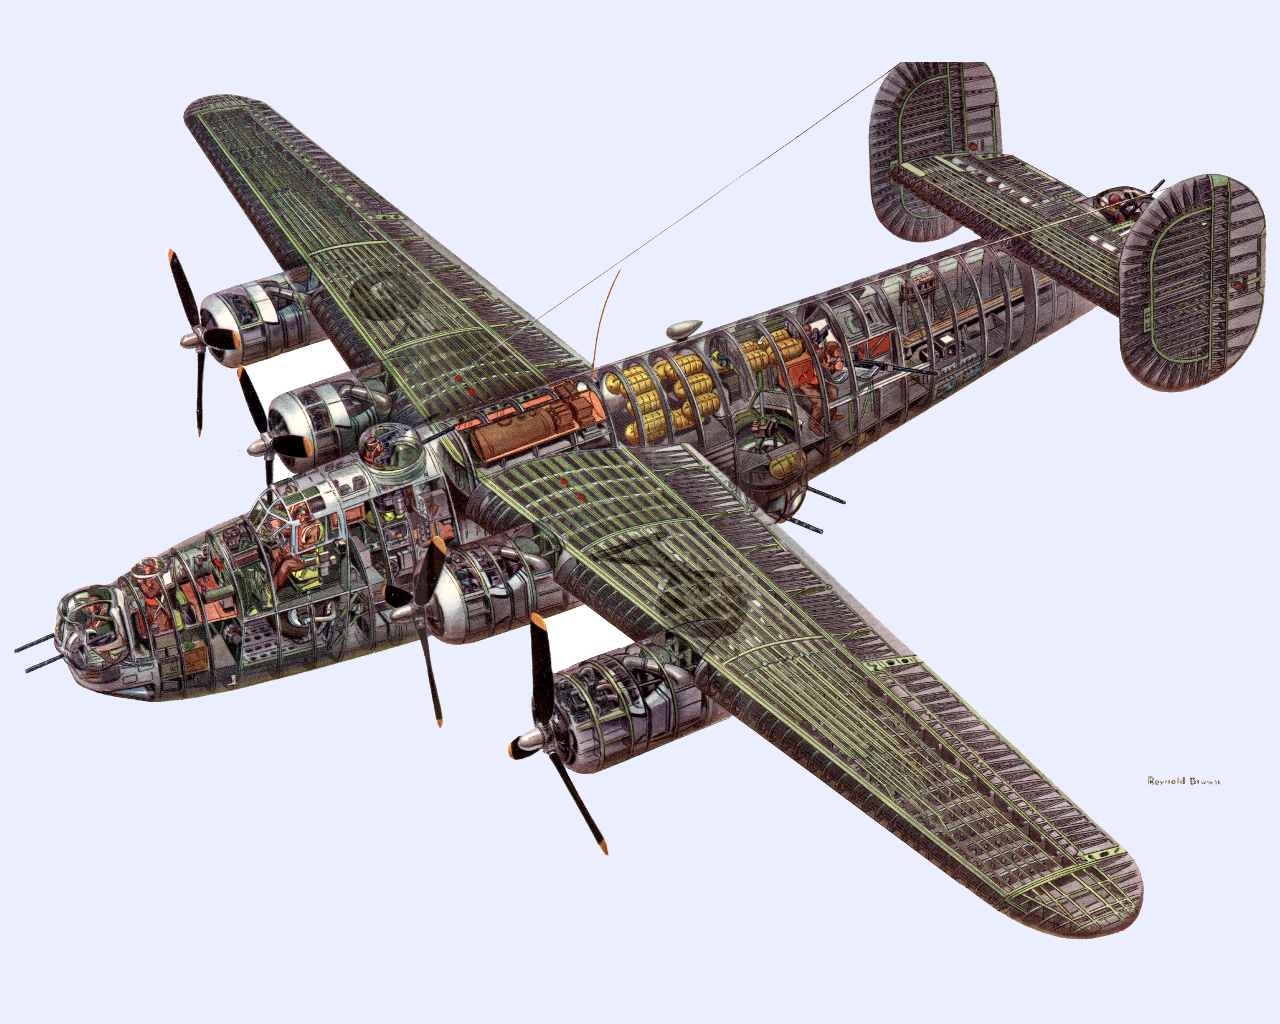 1280x1024 - Consolidated B-24 Liberator Wallpapers 21